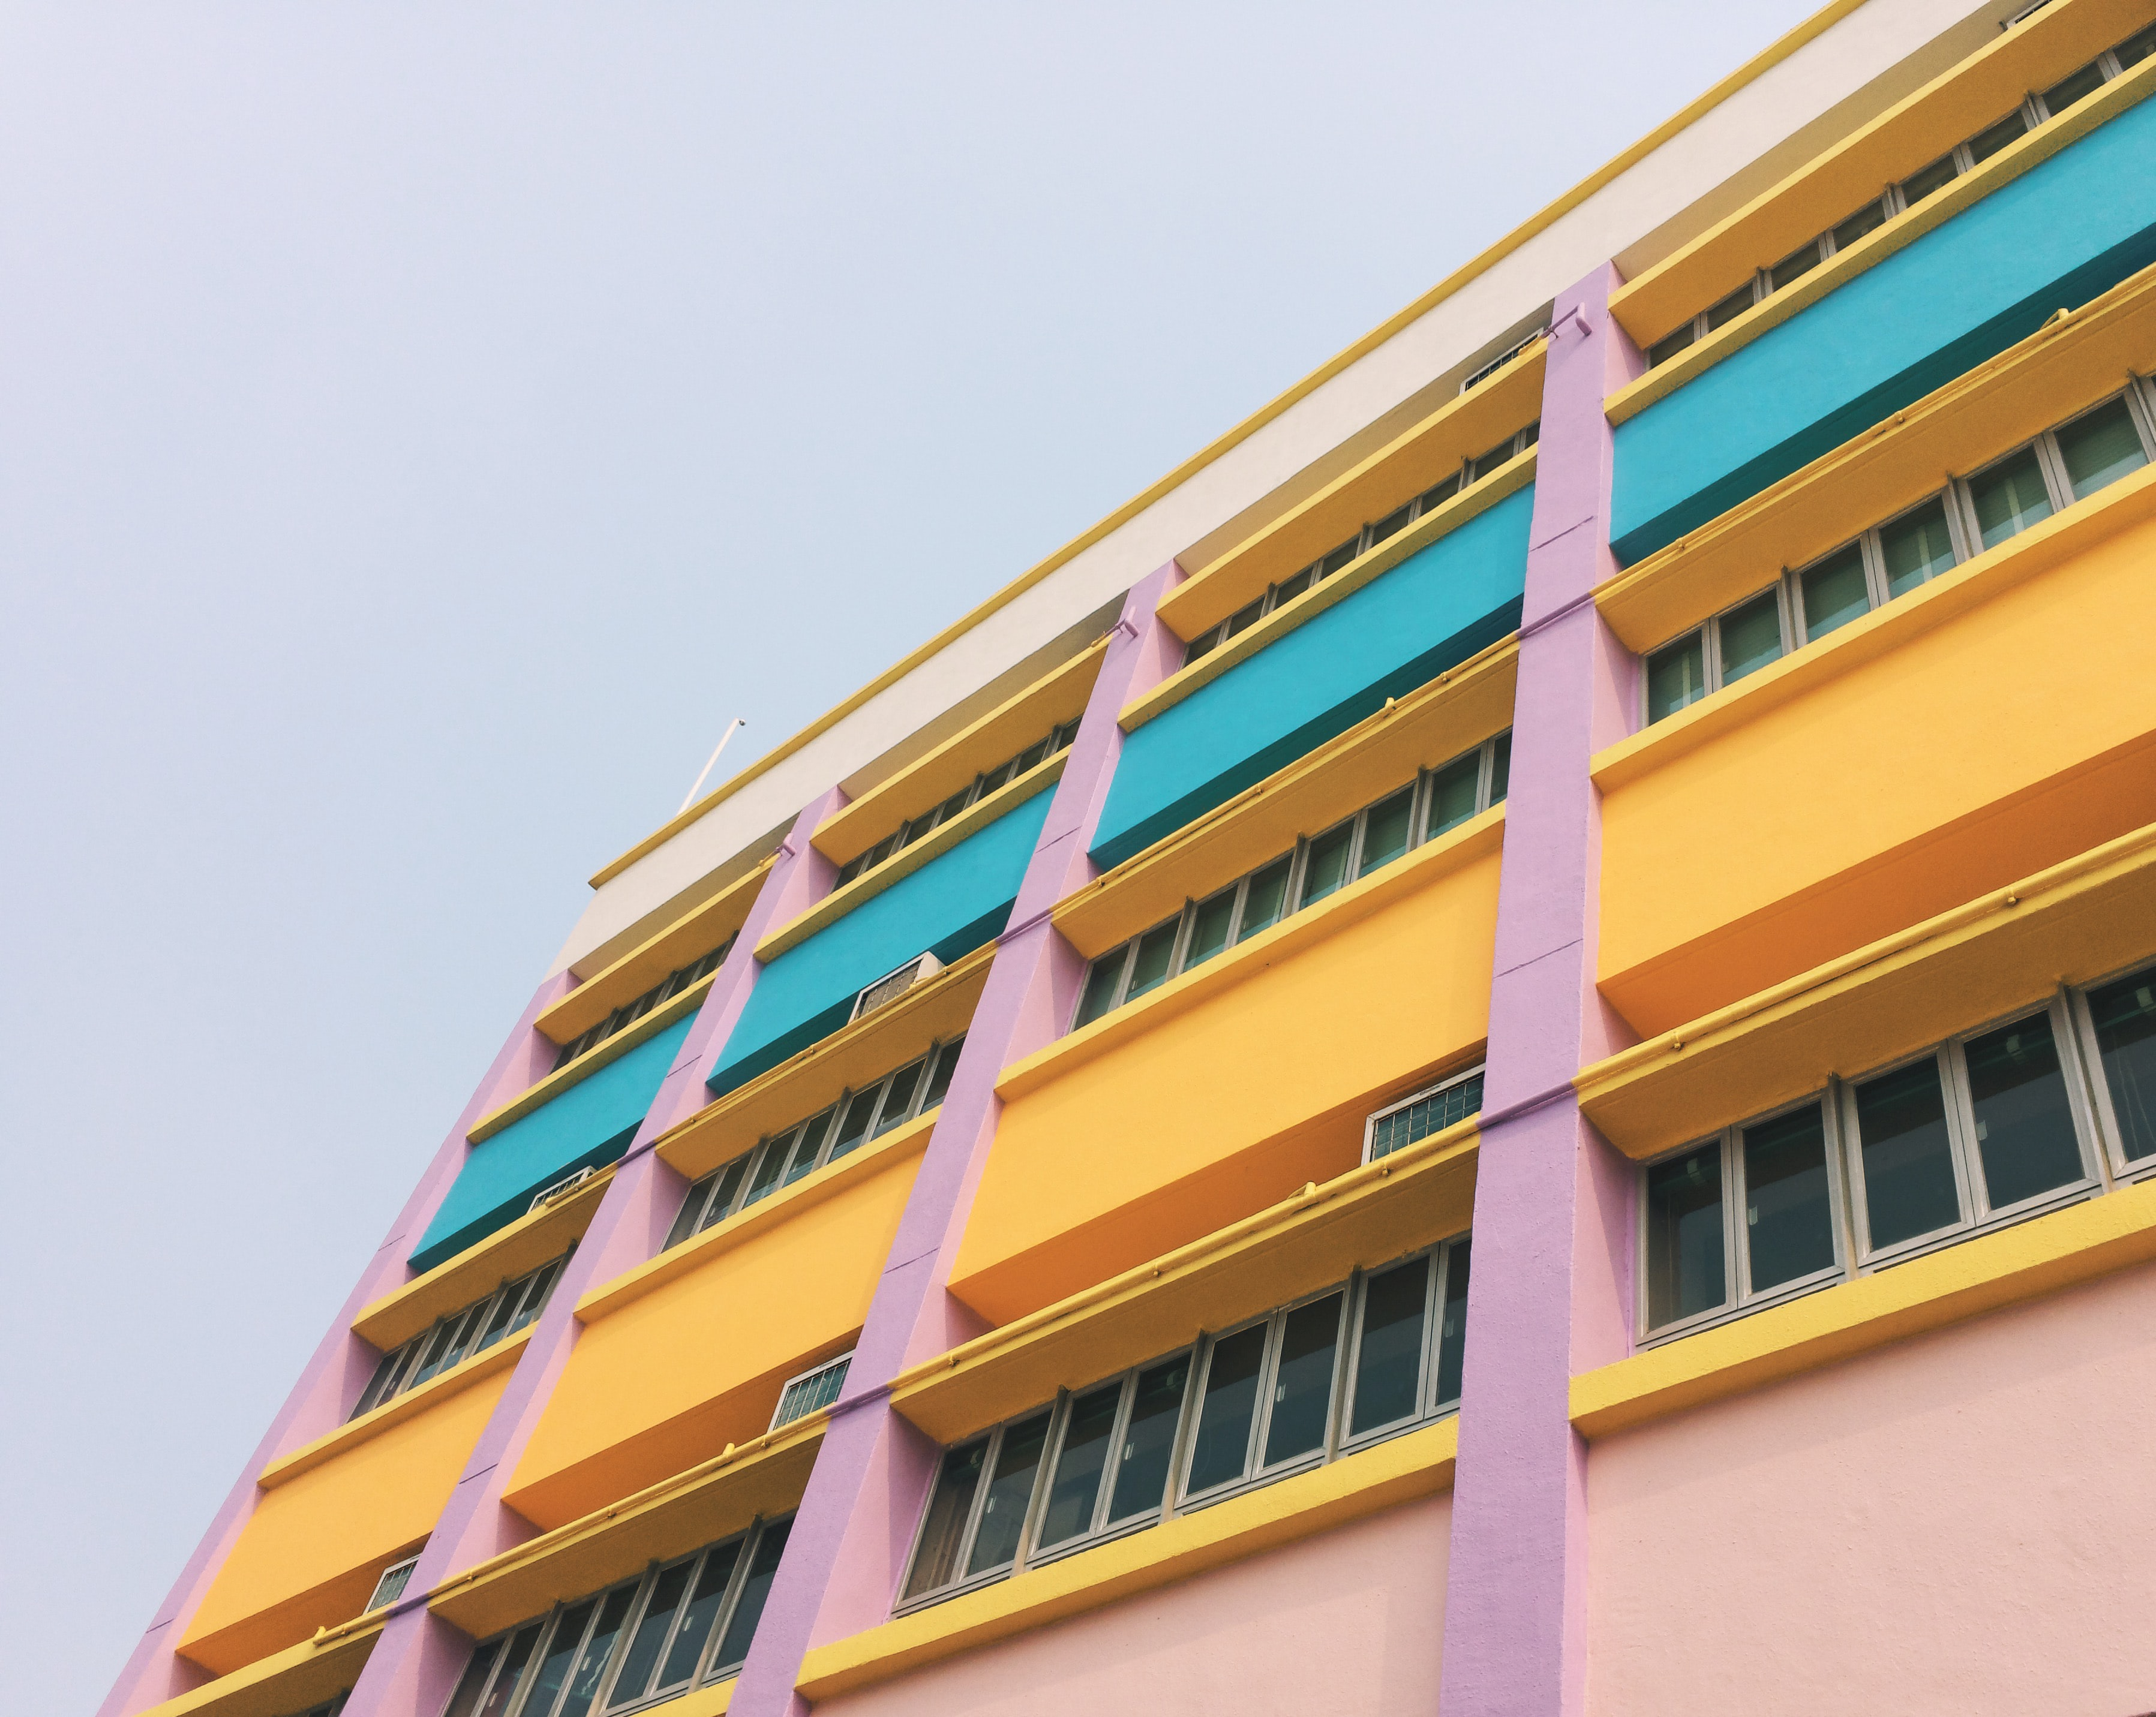 low angle photography of colorful building